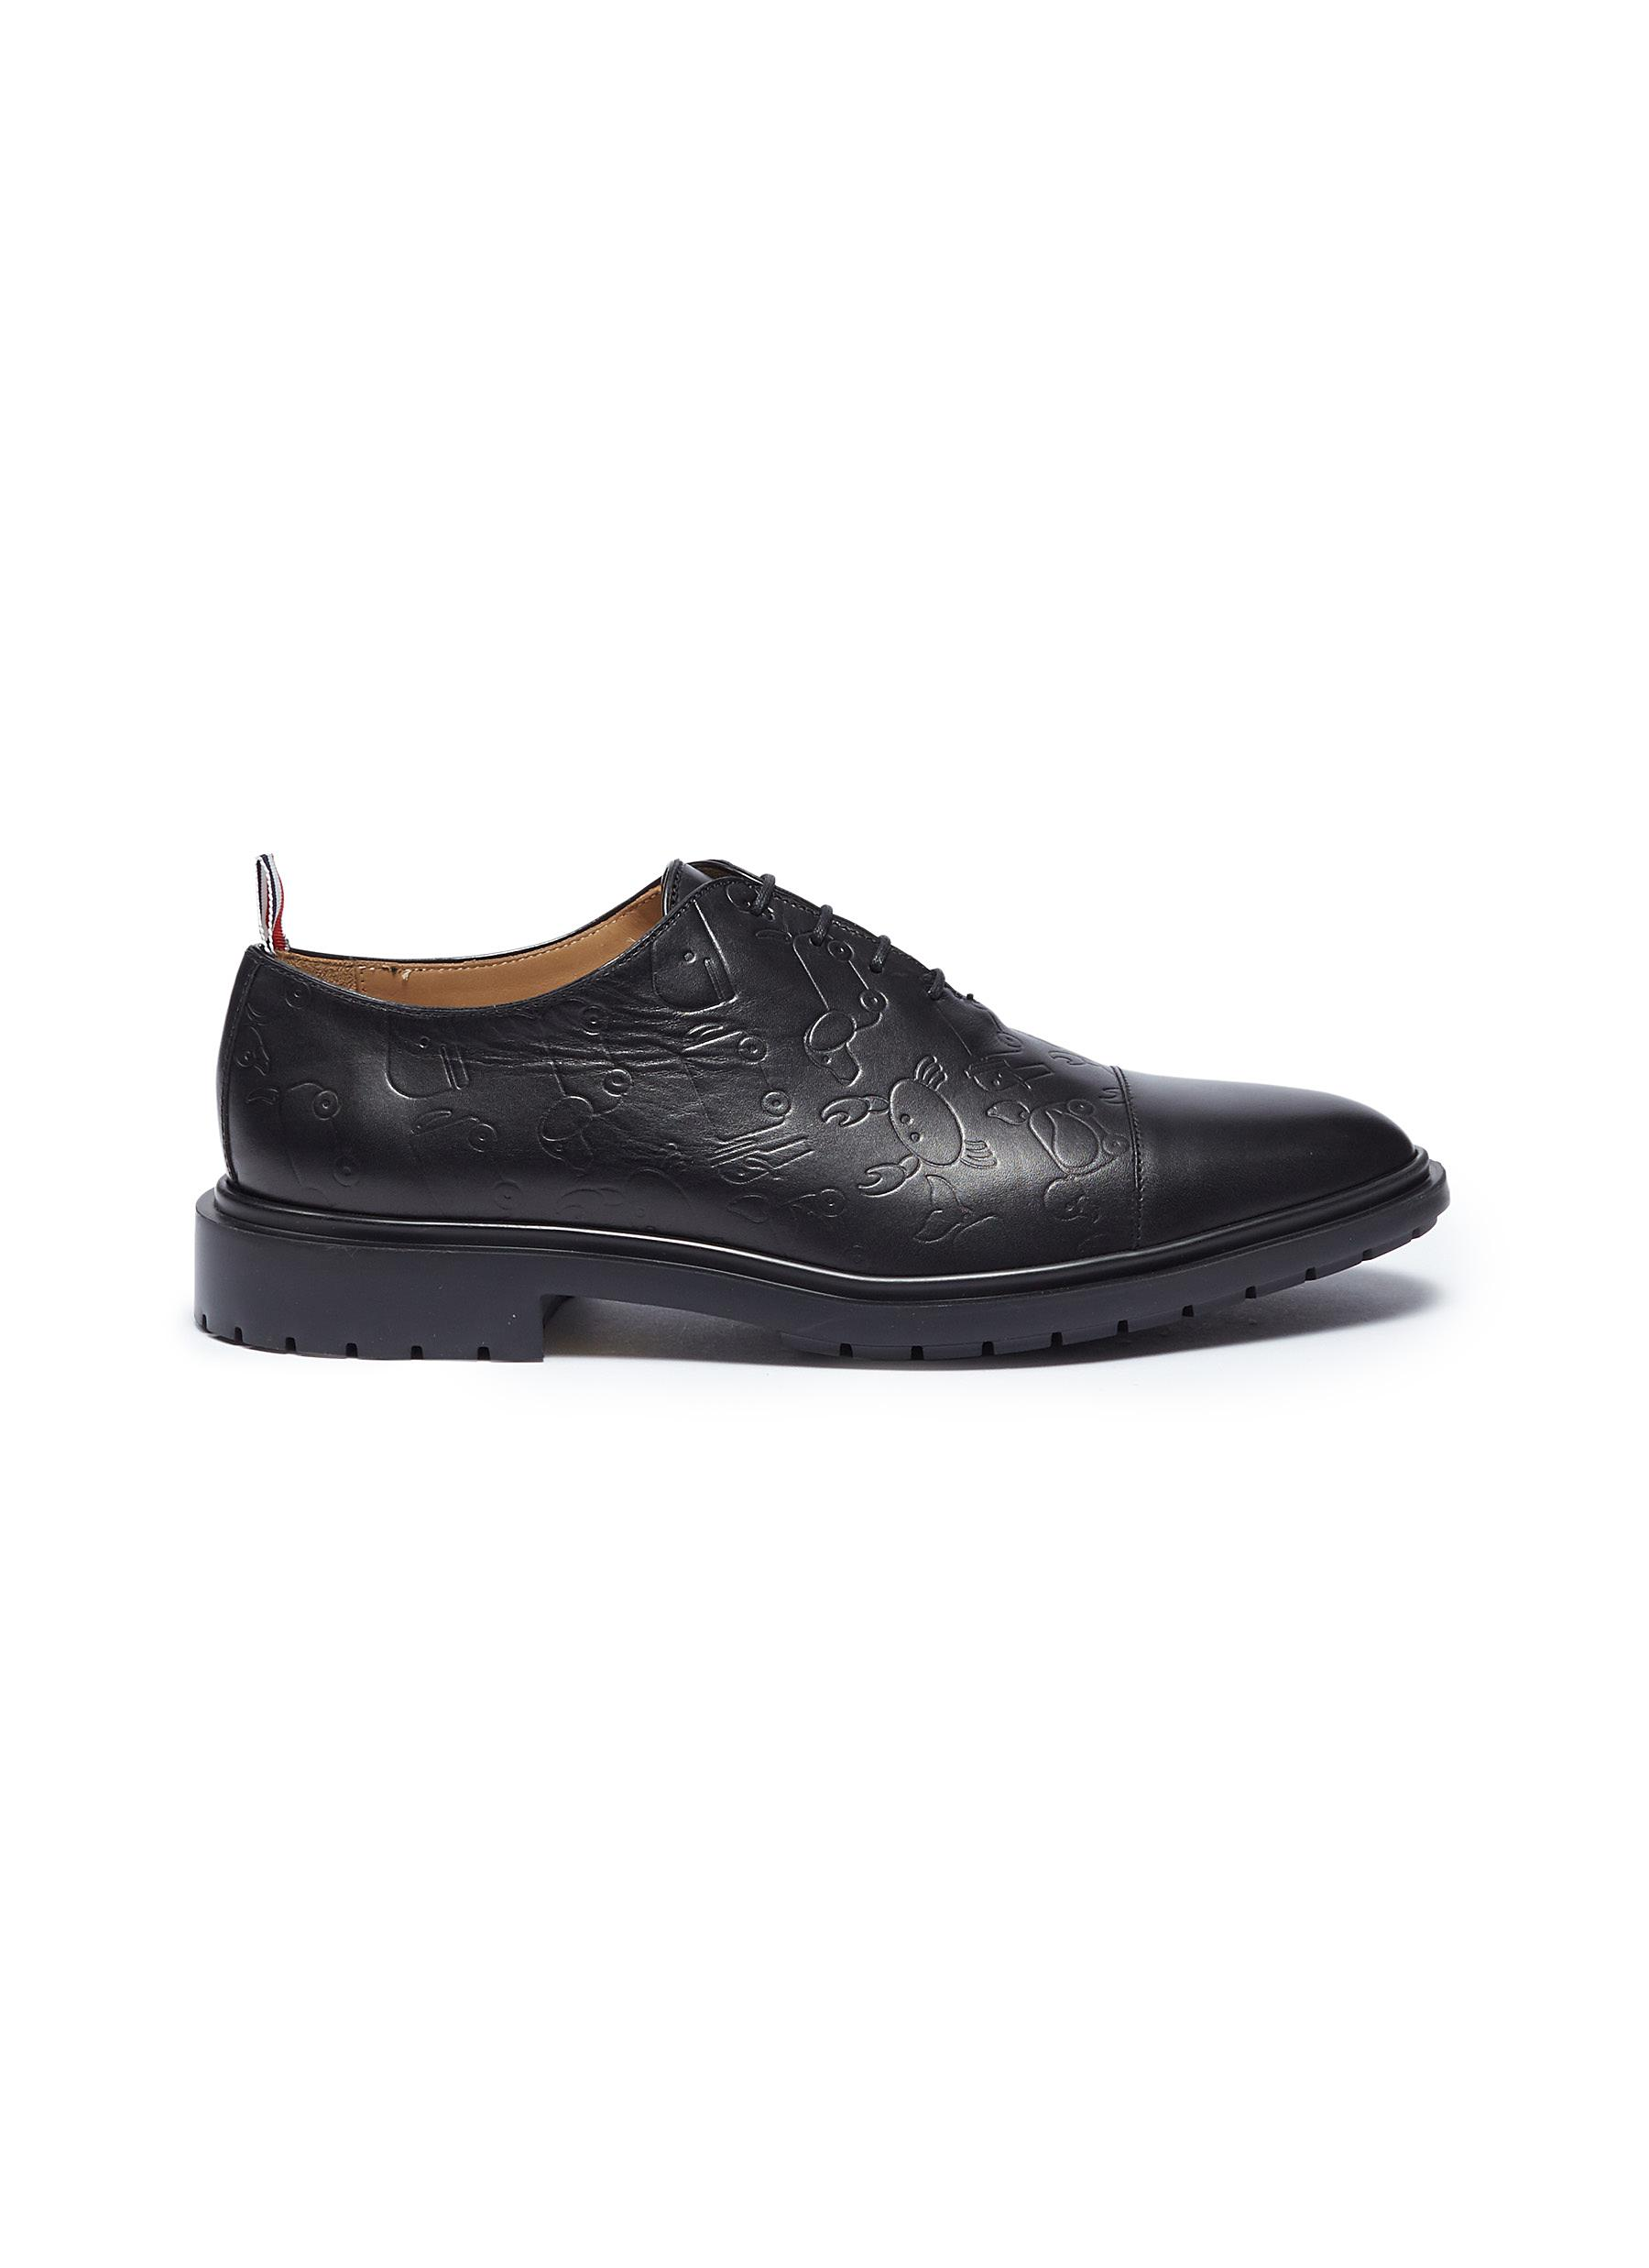 Graphic embossed leather shoes by Thom Browne